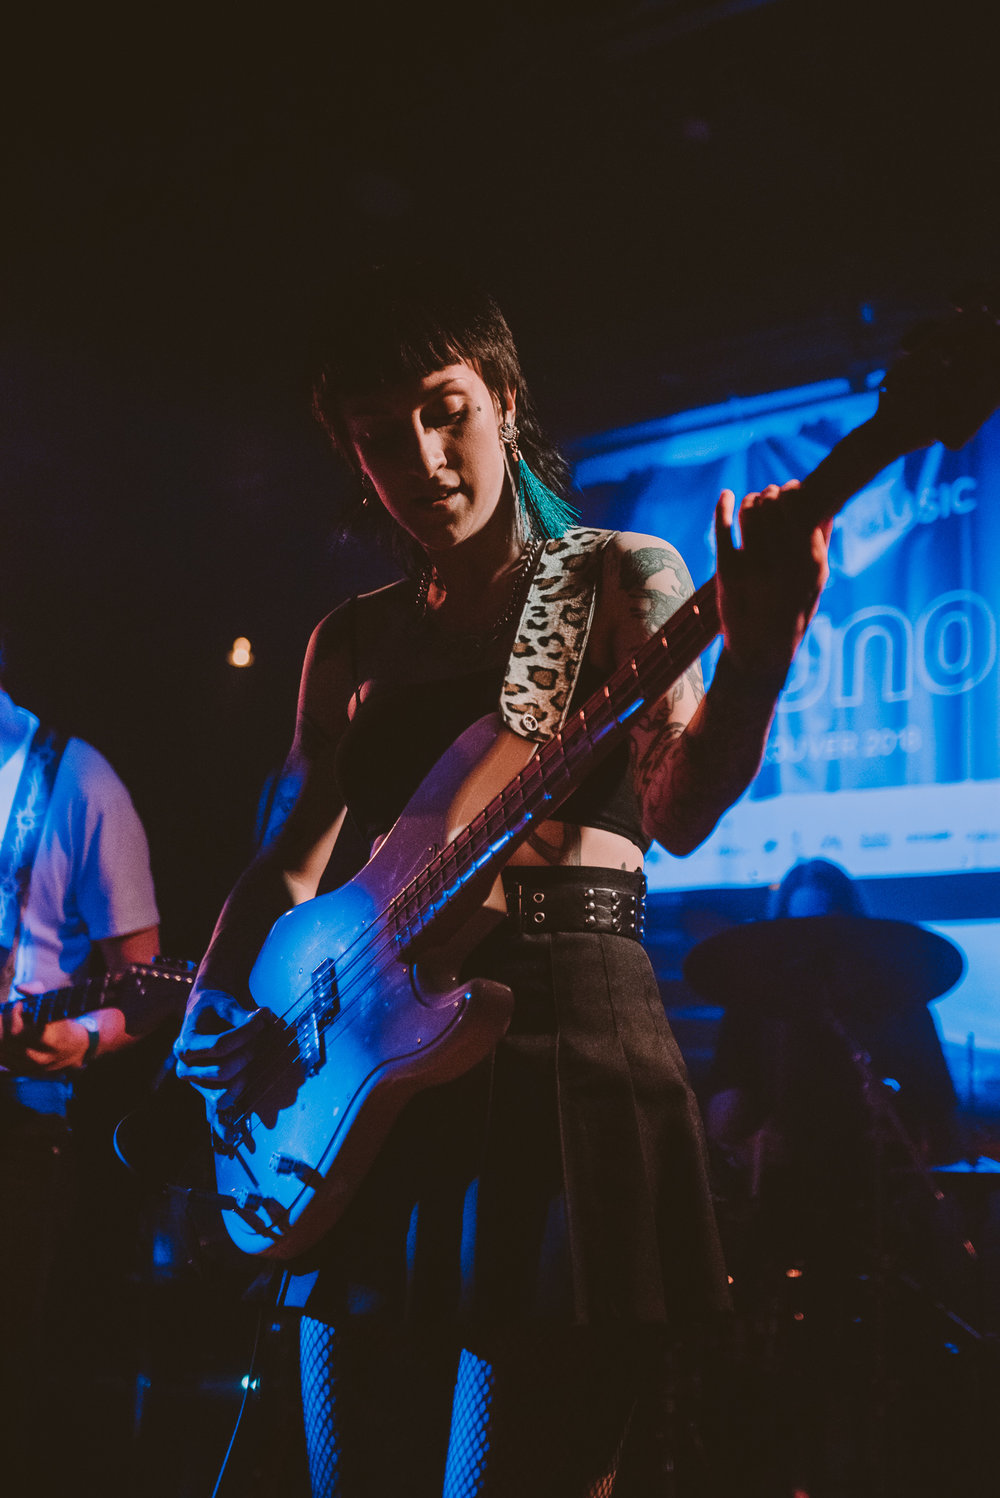 2_Jo_Passed-Fortune_Sound_Club-Timothy_Nguyen-20180323 (14 of 15).jpg